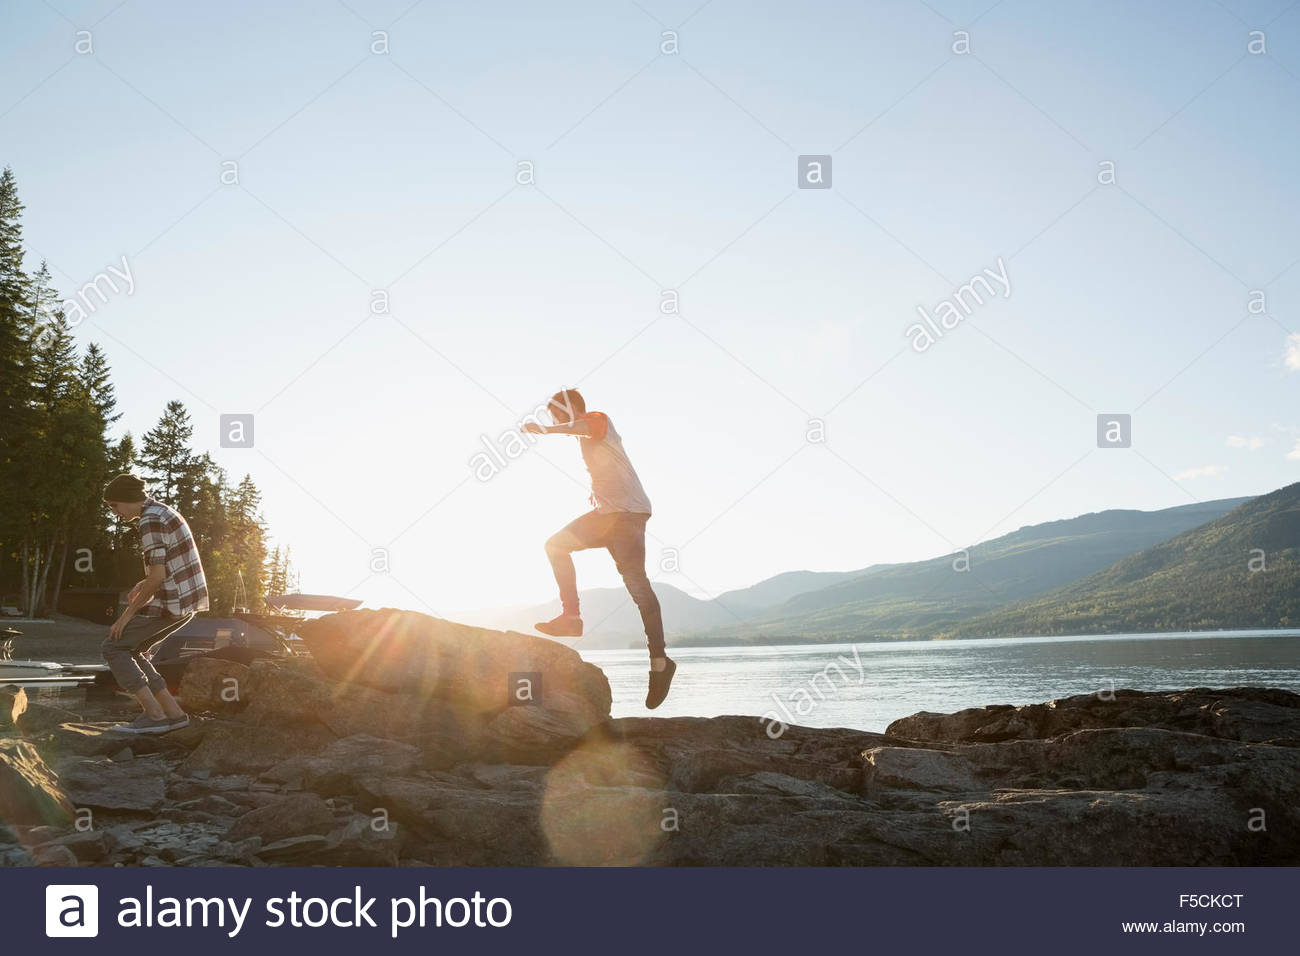 Young men jumping over rocks at sunny lakeside - Stock Image